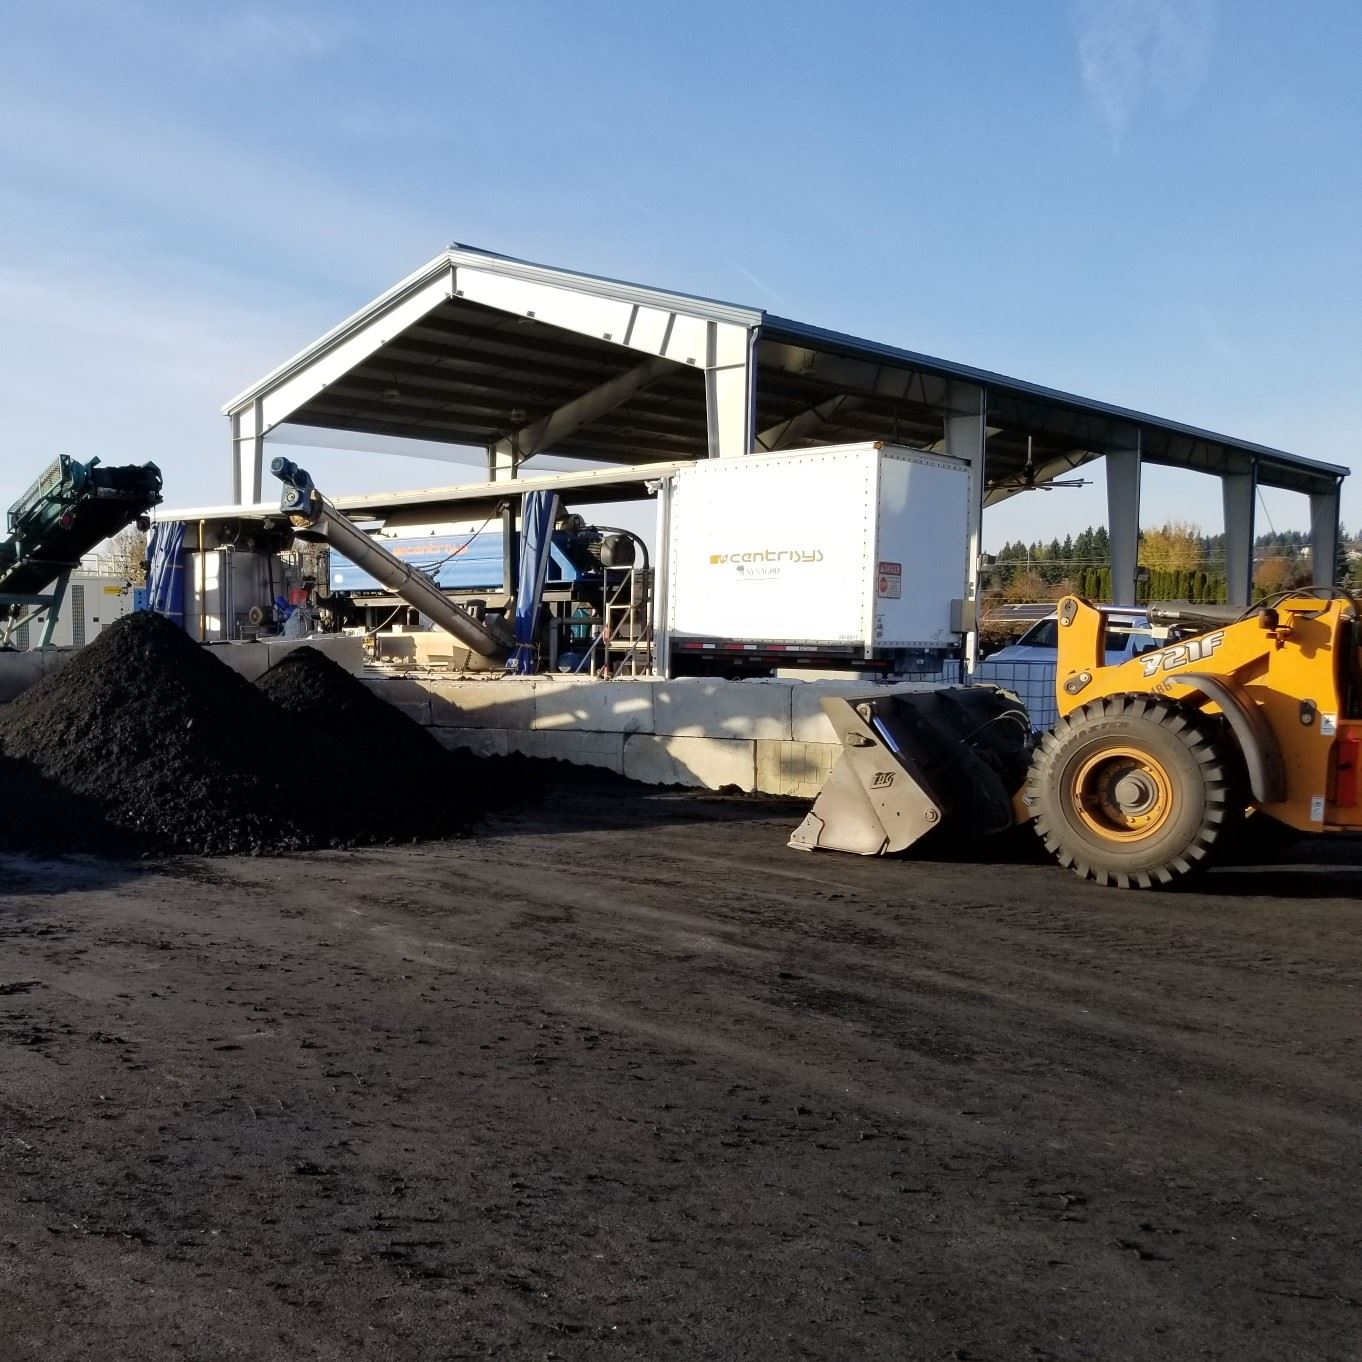 Biosolids Dredge/Haul Project